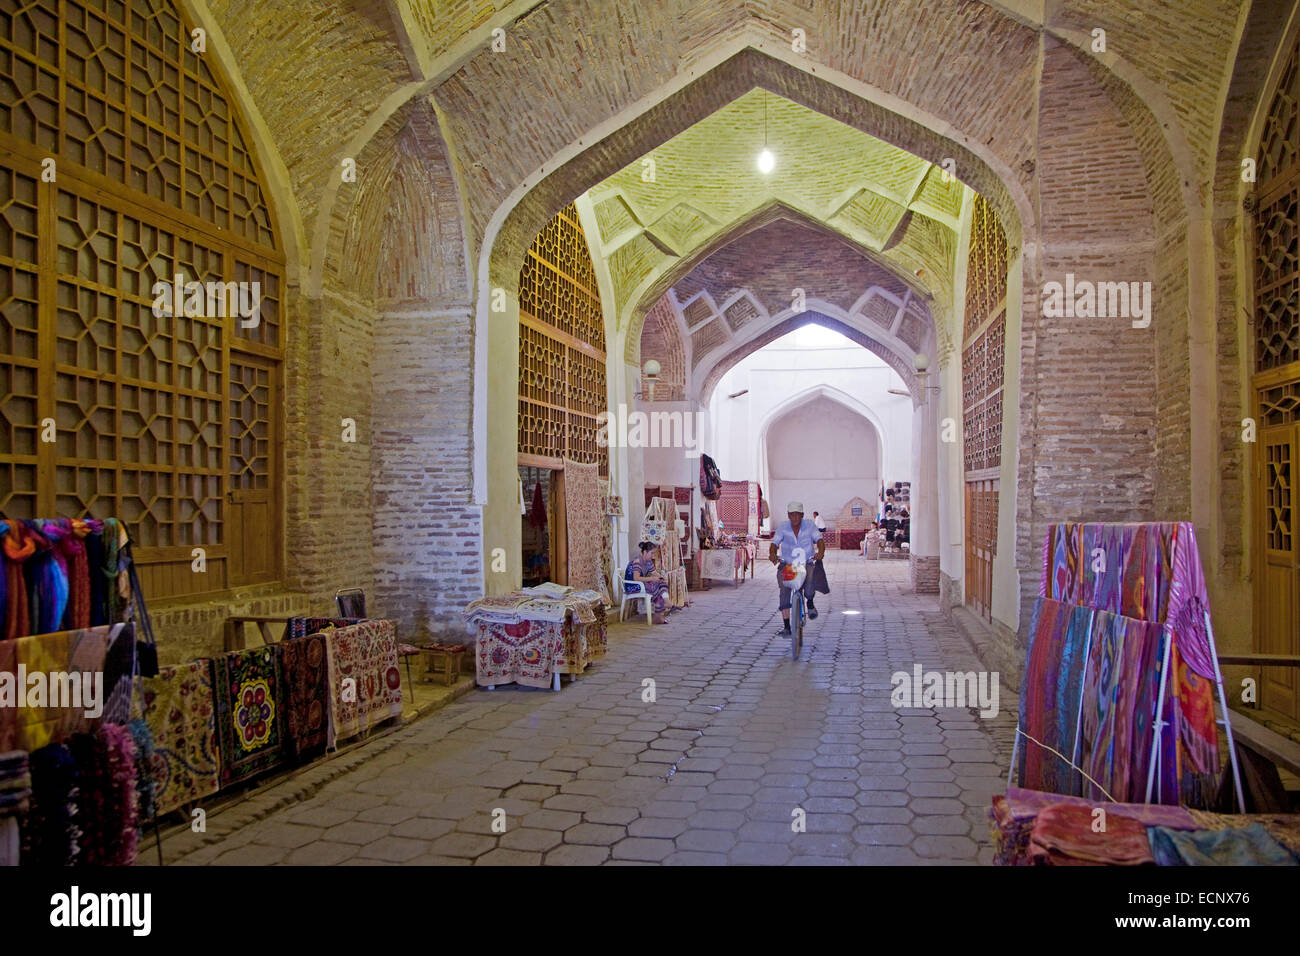 Carpets for sale in the old indoor market of the historic Silk Road town Bukhara / Buxoro, Uzbekistan - Stock Image